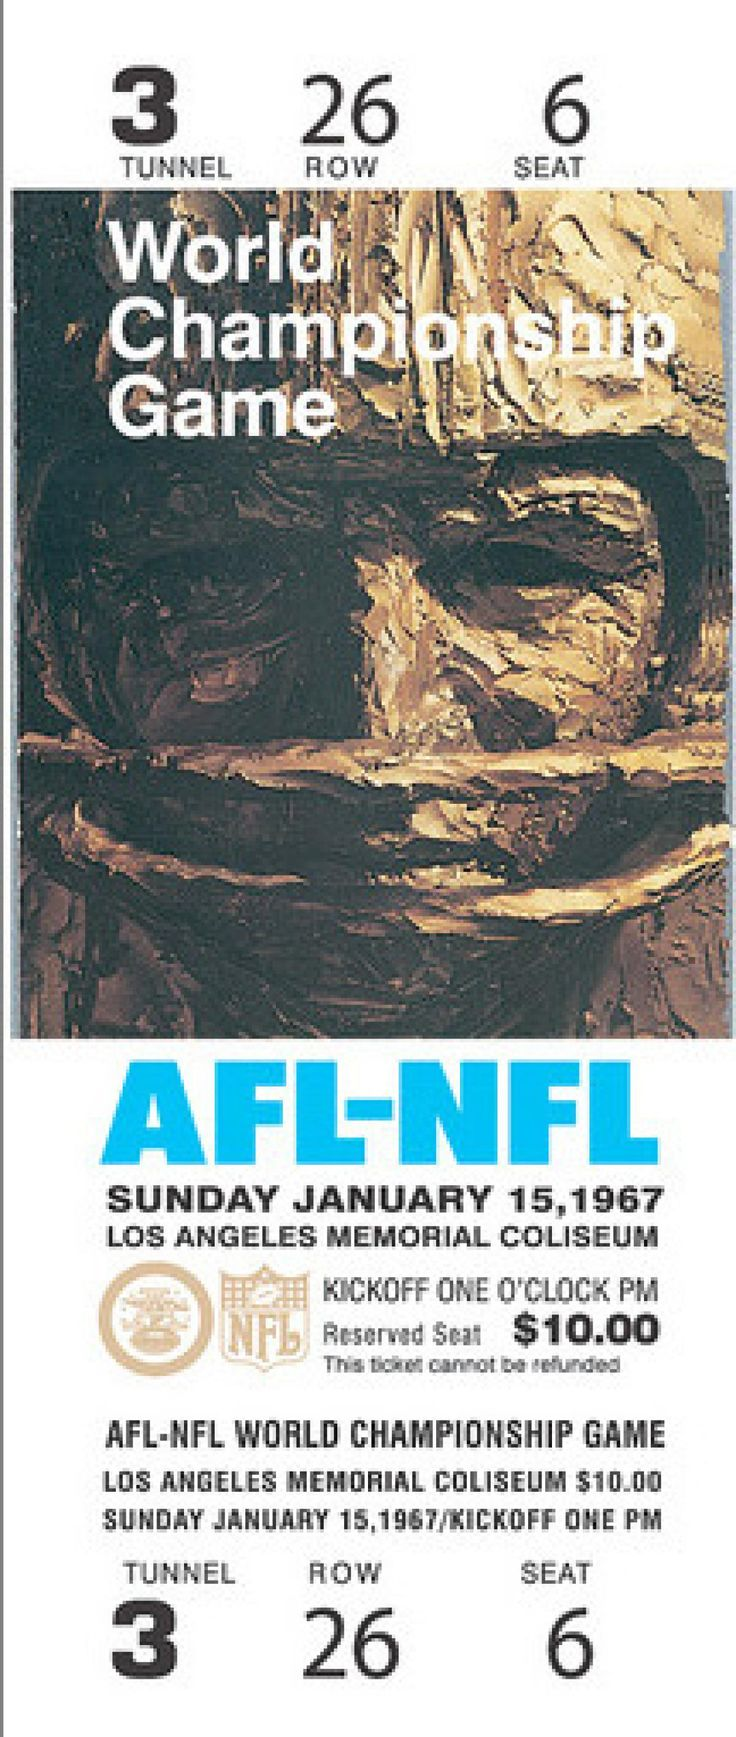 A ticket to Super Bowl I in Los Angeles cost $6- Green Bay Packers vs. Kanasa City Cheifs, Jan 15, 1967